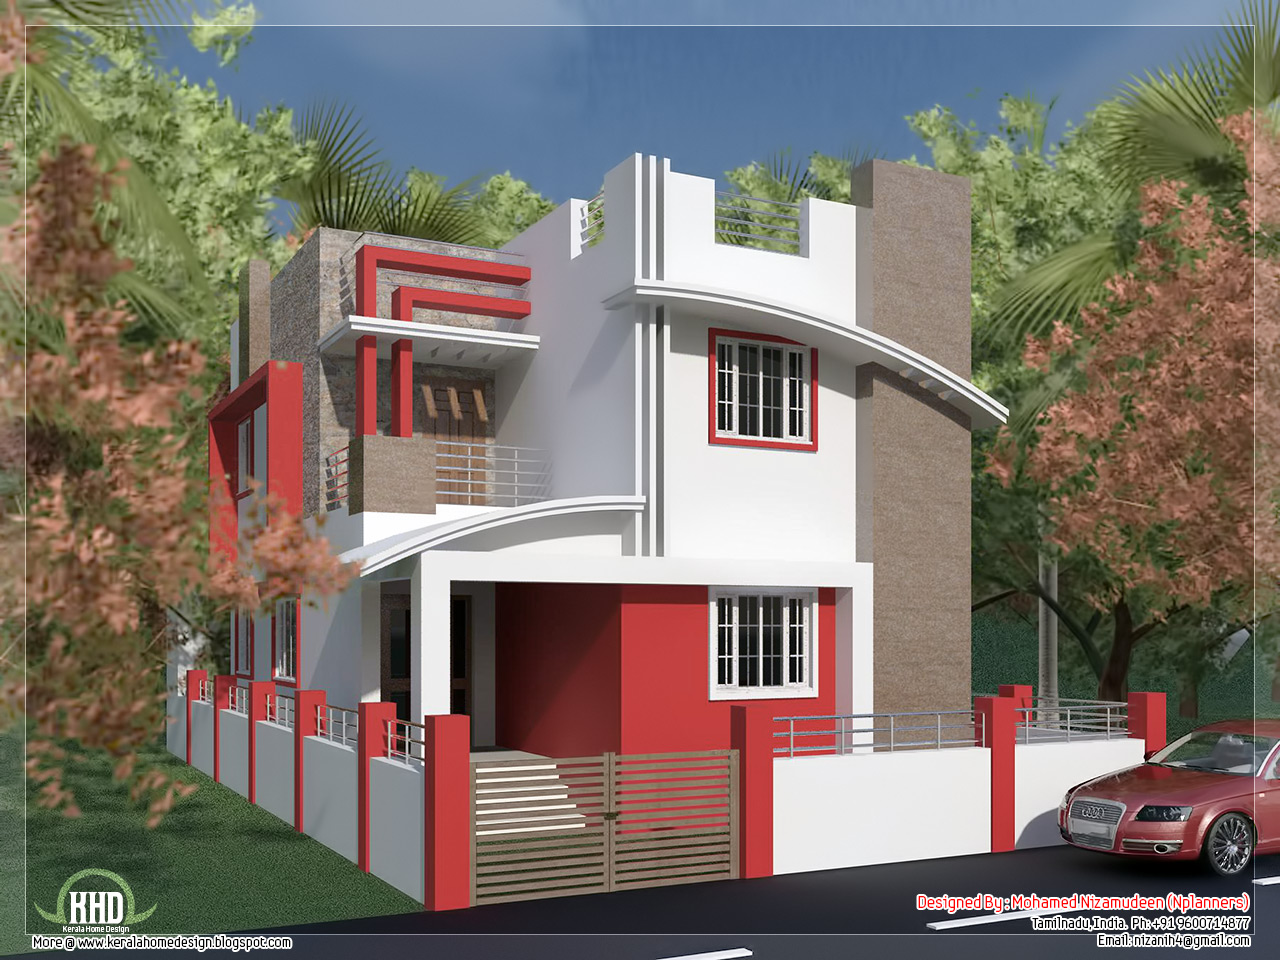 South indian villa in 1375 kerala house design Villa designs india